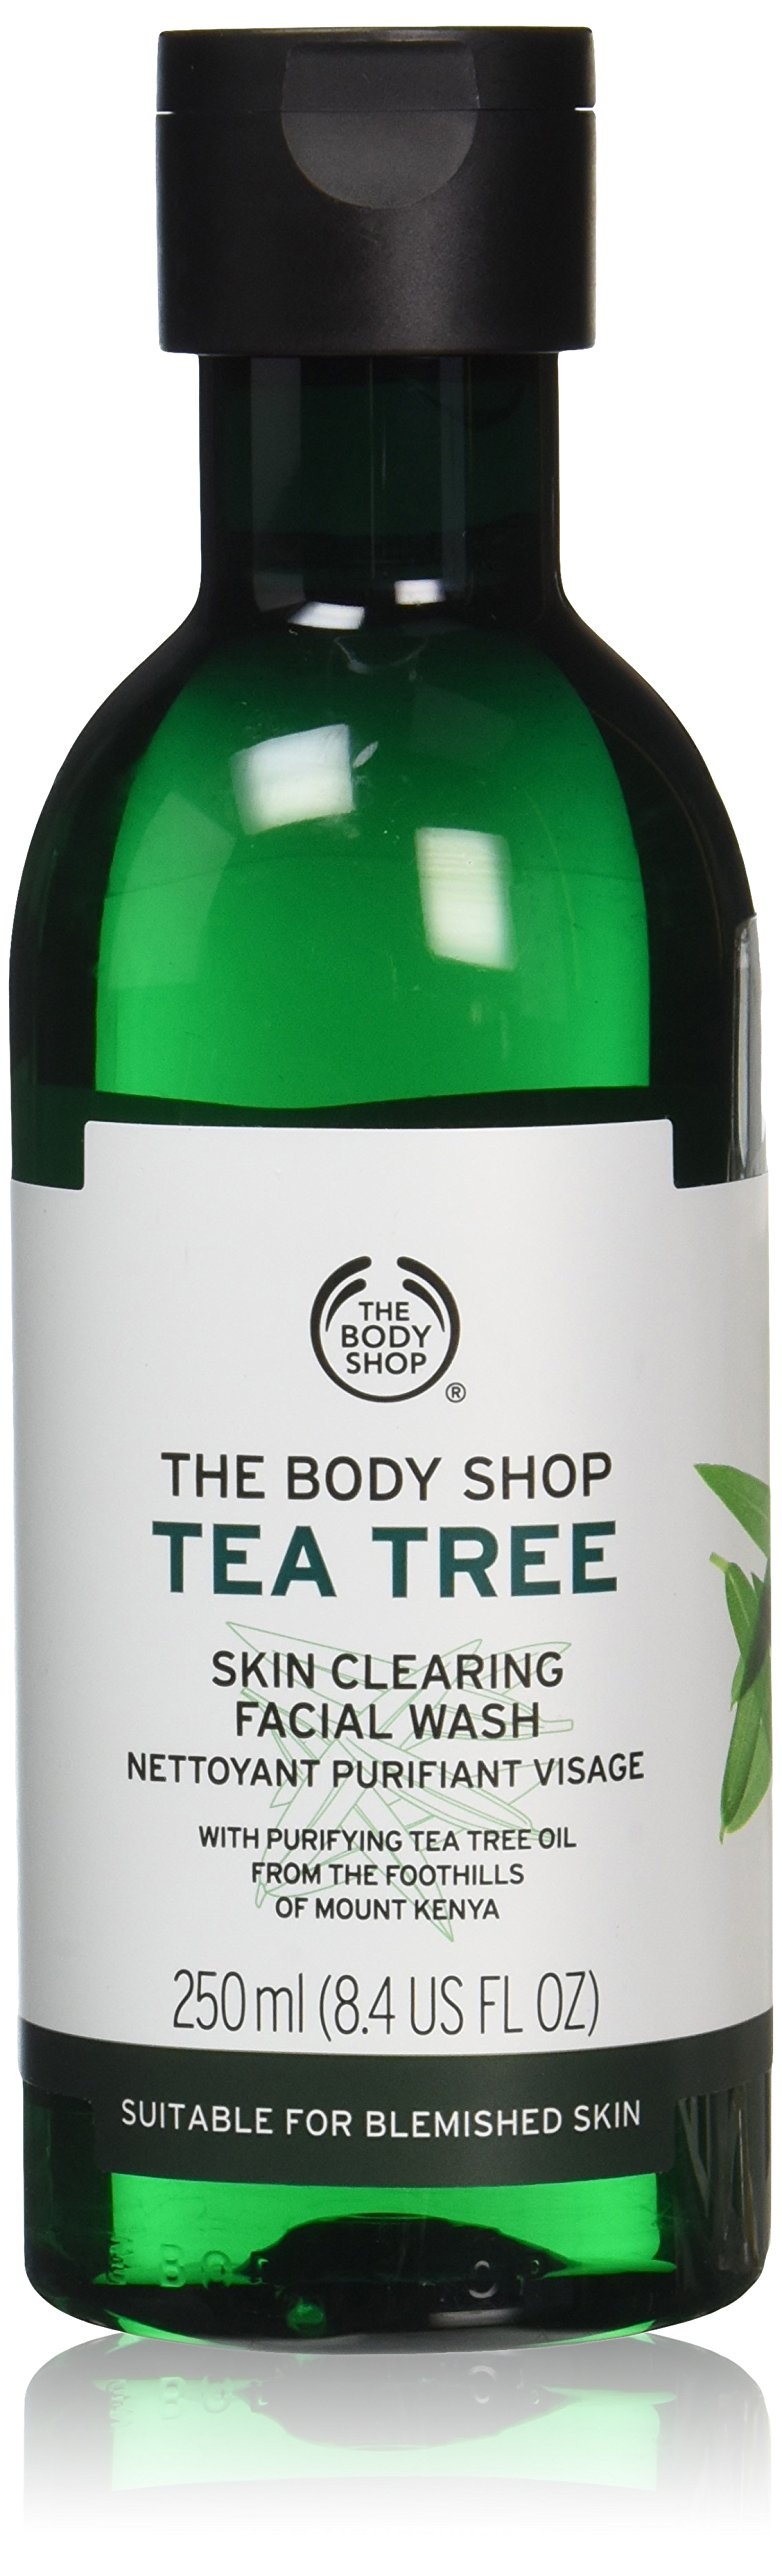 The Body Shop Tea Tree Skin Clearing Facial Wash, 8.4 Fl Oz (Vegan)